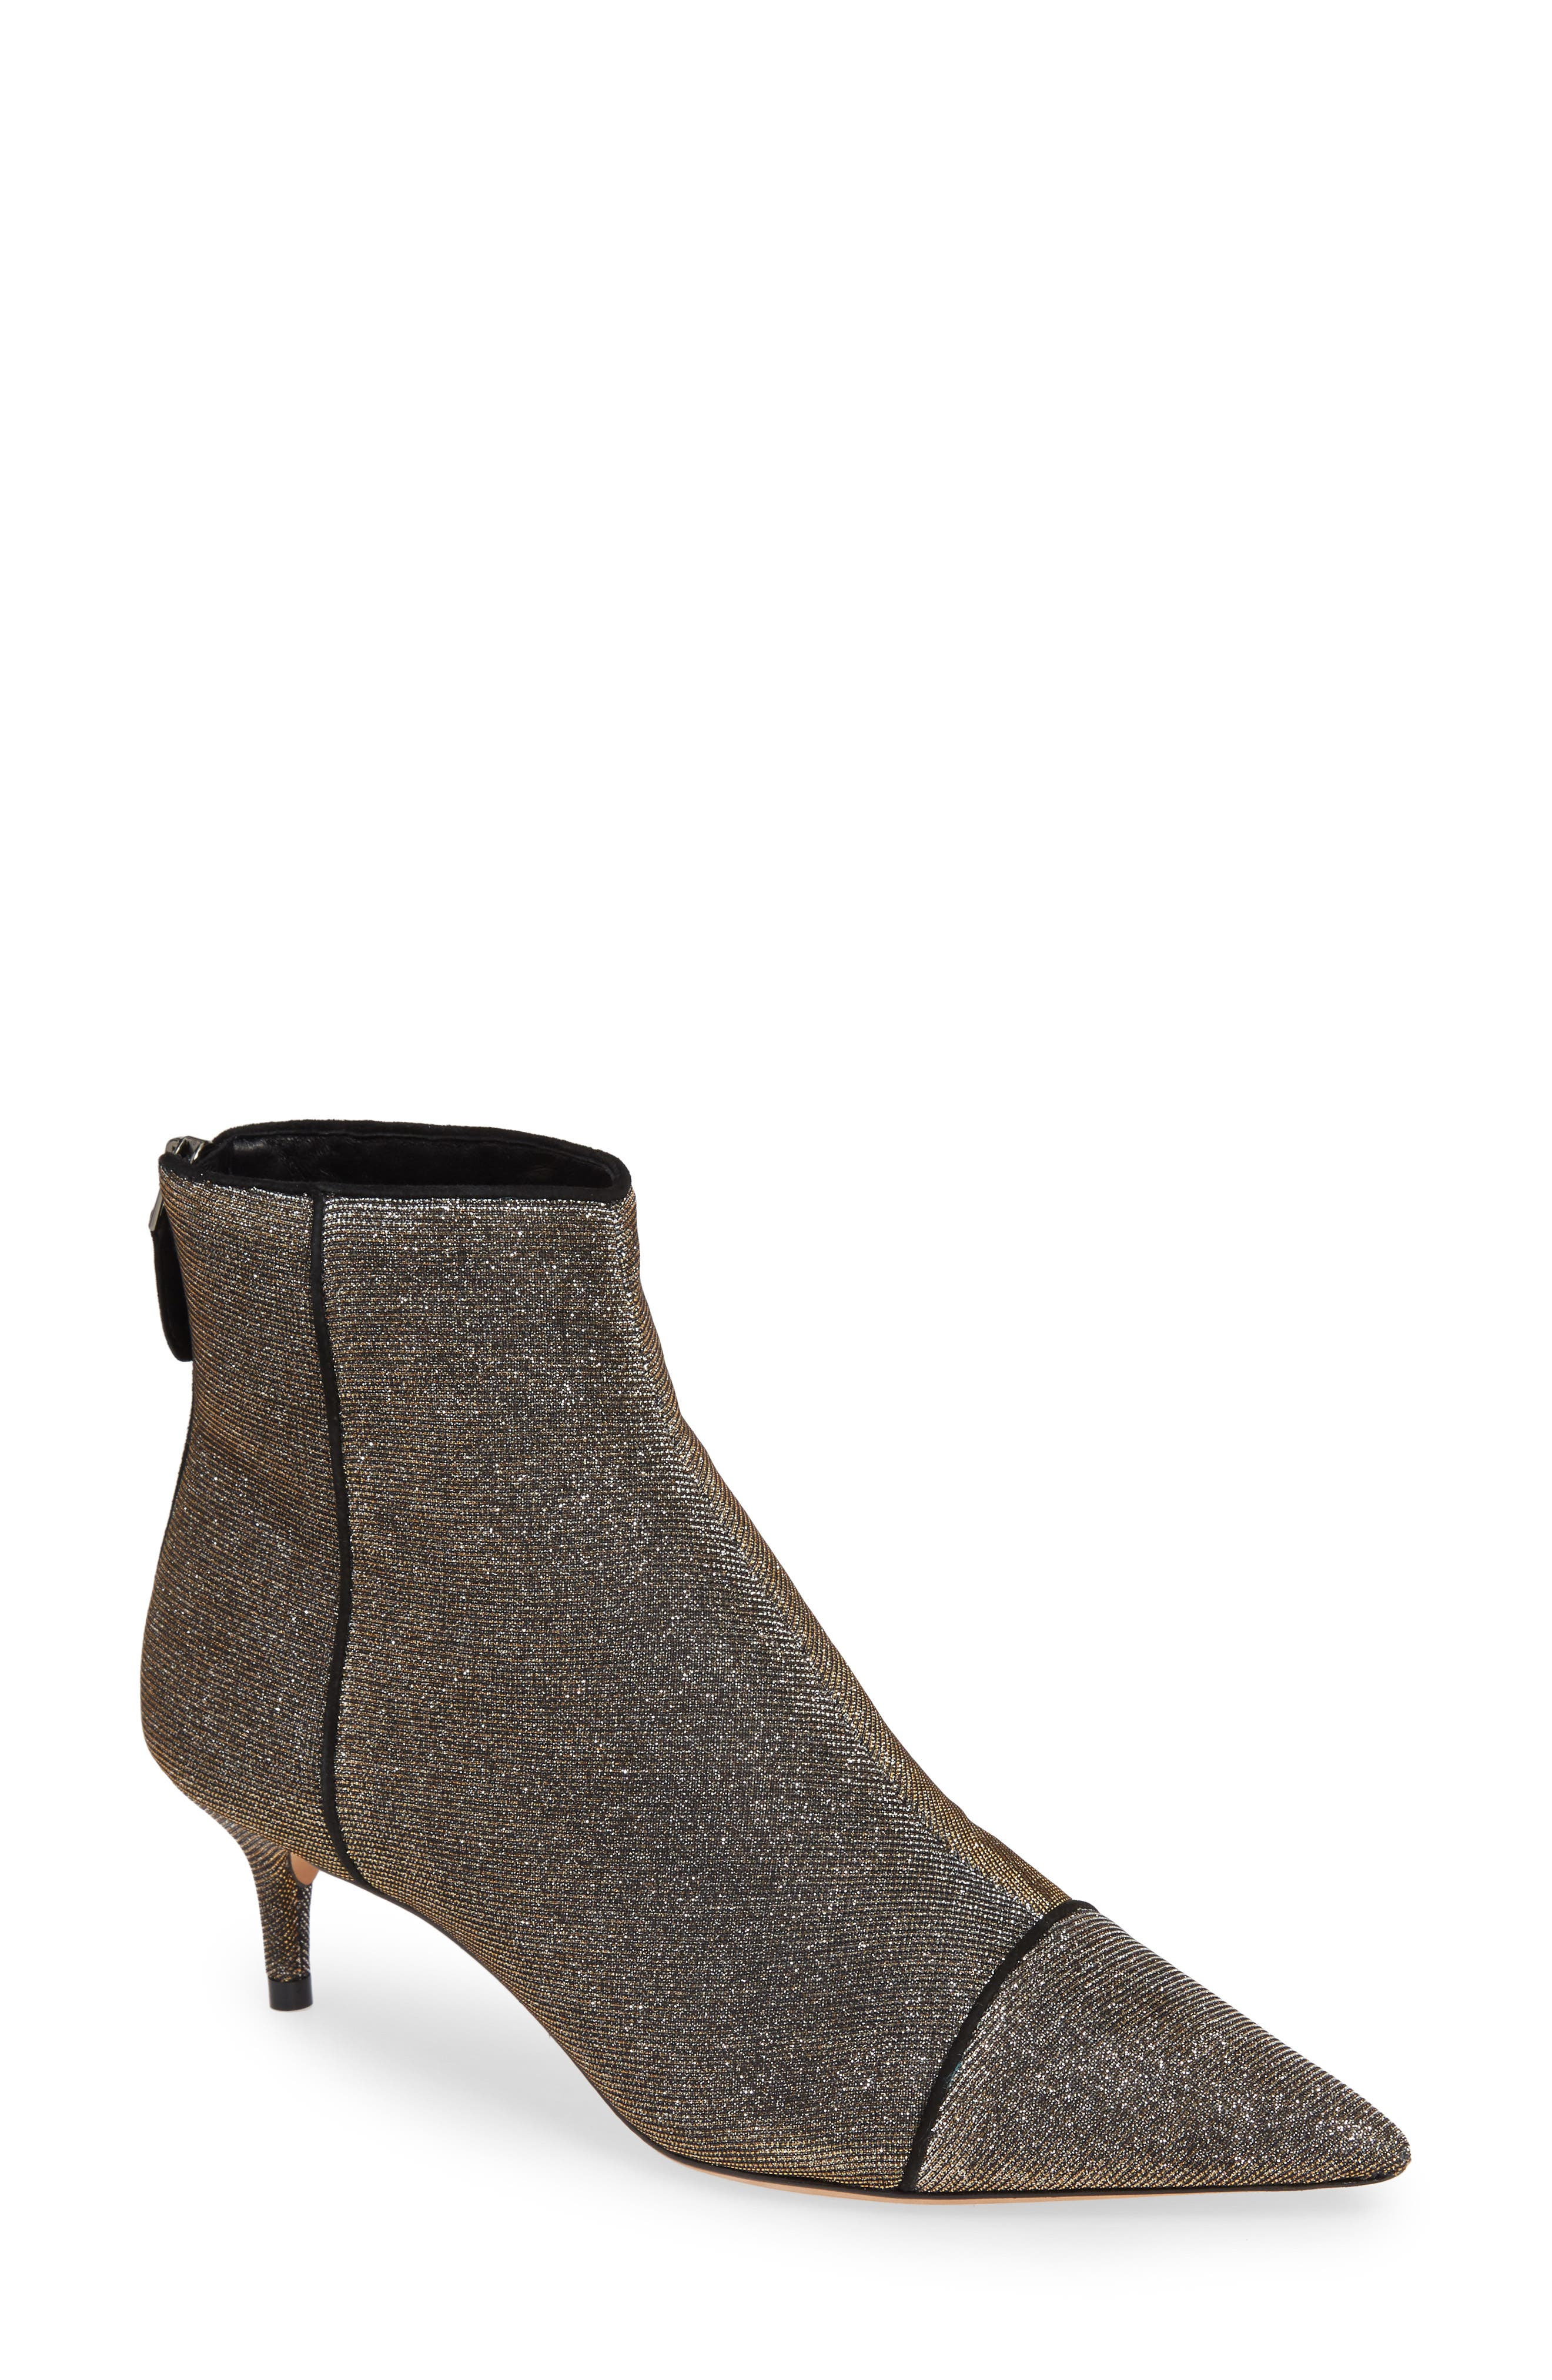 ALEXANDRE BIRMAN Kittie Pointy Toe Bootie, Main, color, BLACK